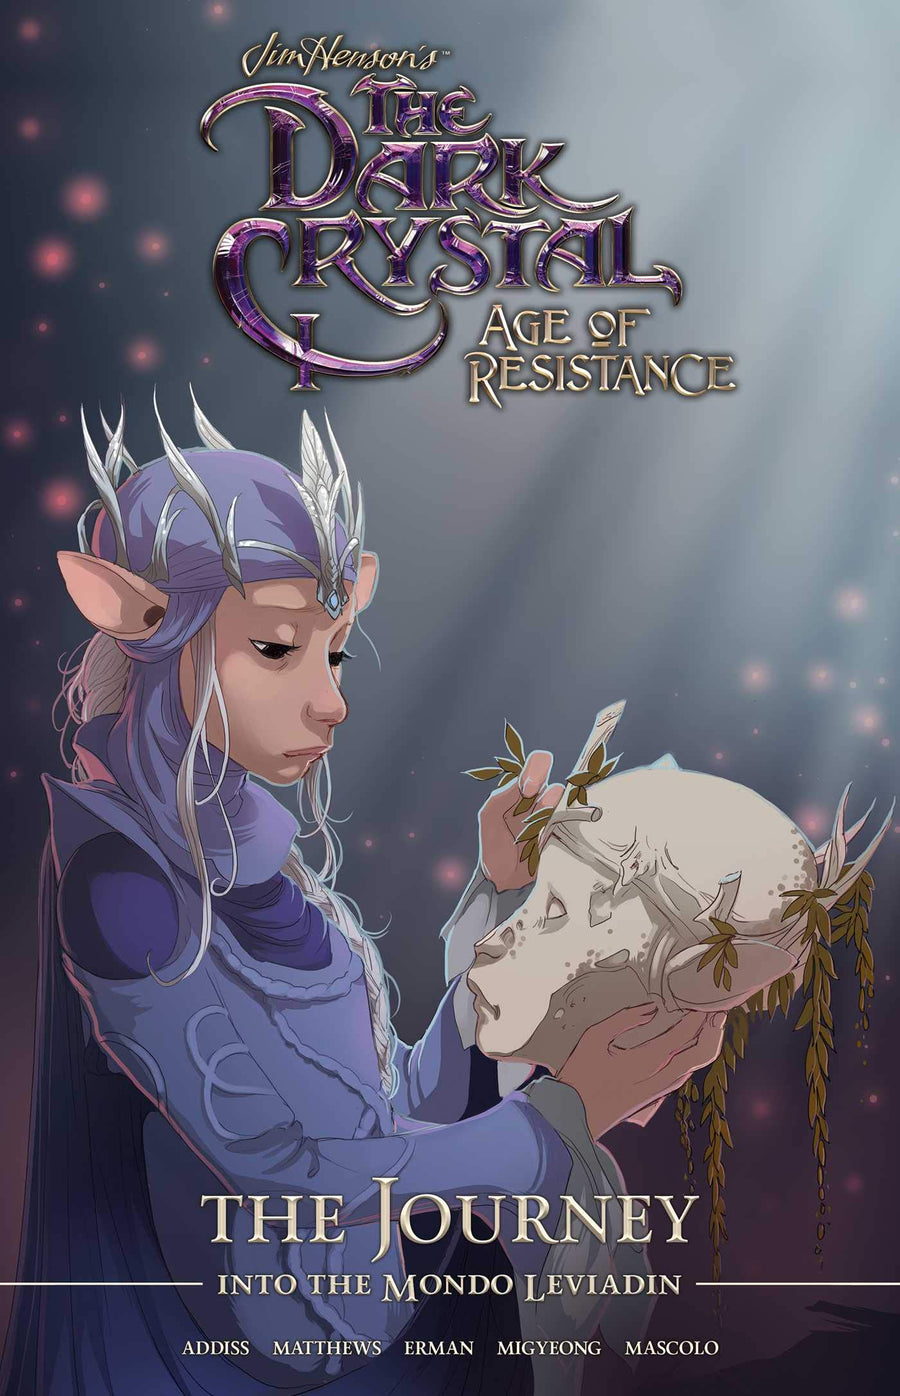 Jim Henson's The Dark Crystal Age Of Resistance: The Journey Into The Mondo Leviadian Hardcover